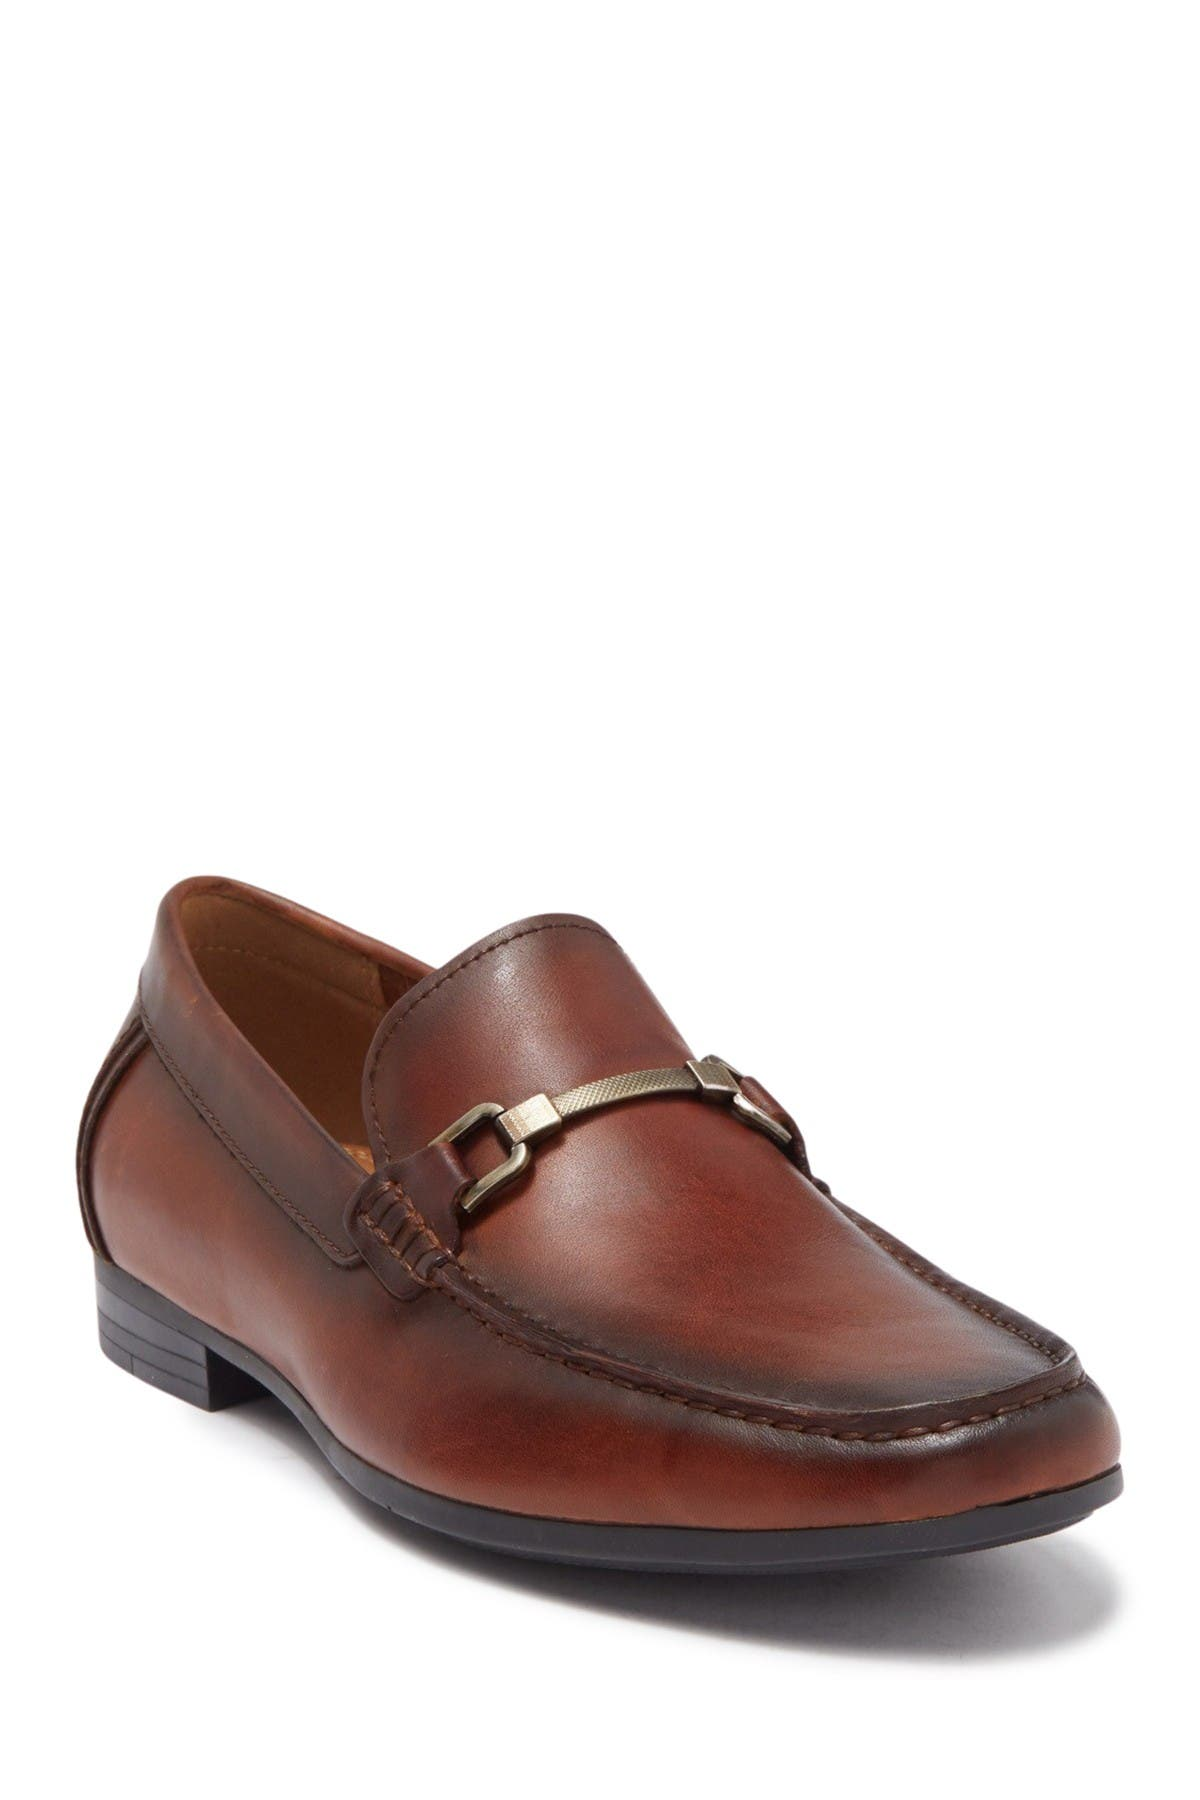 Image of Steve Madden Privacy Bit Loafer